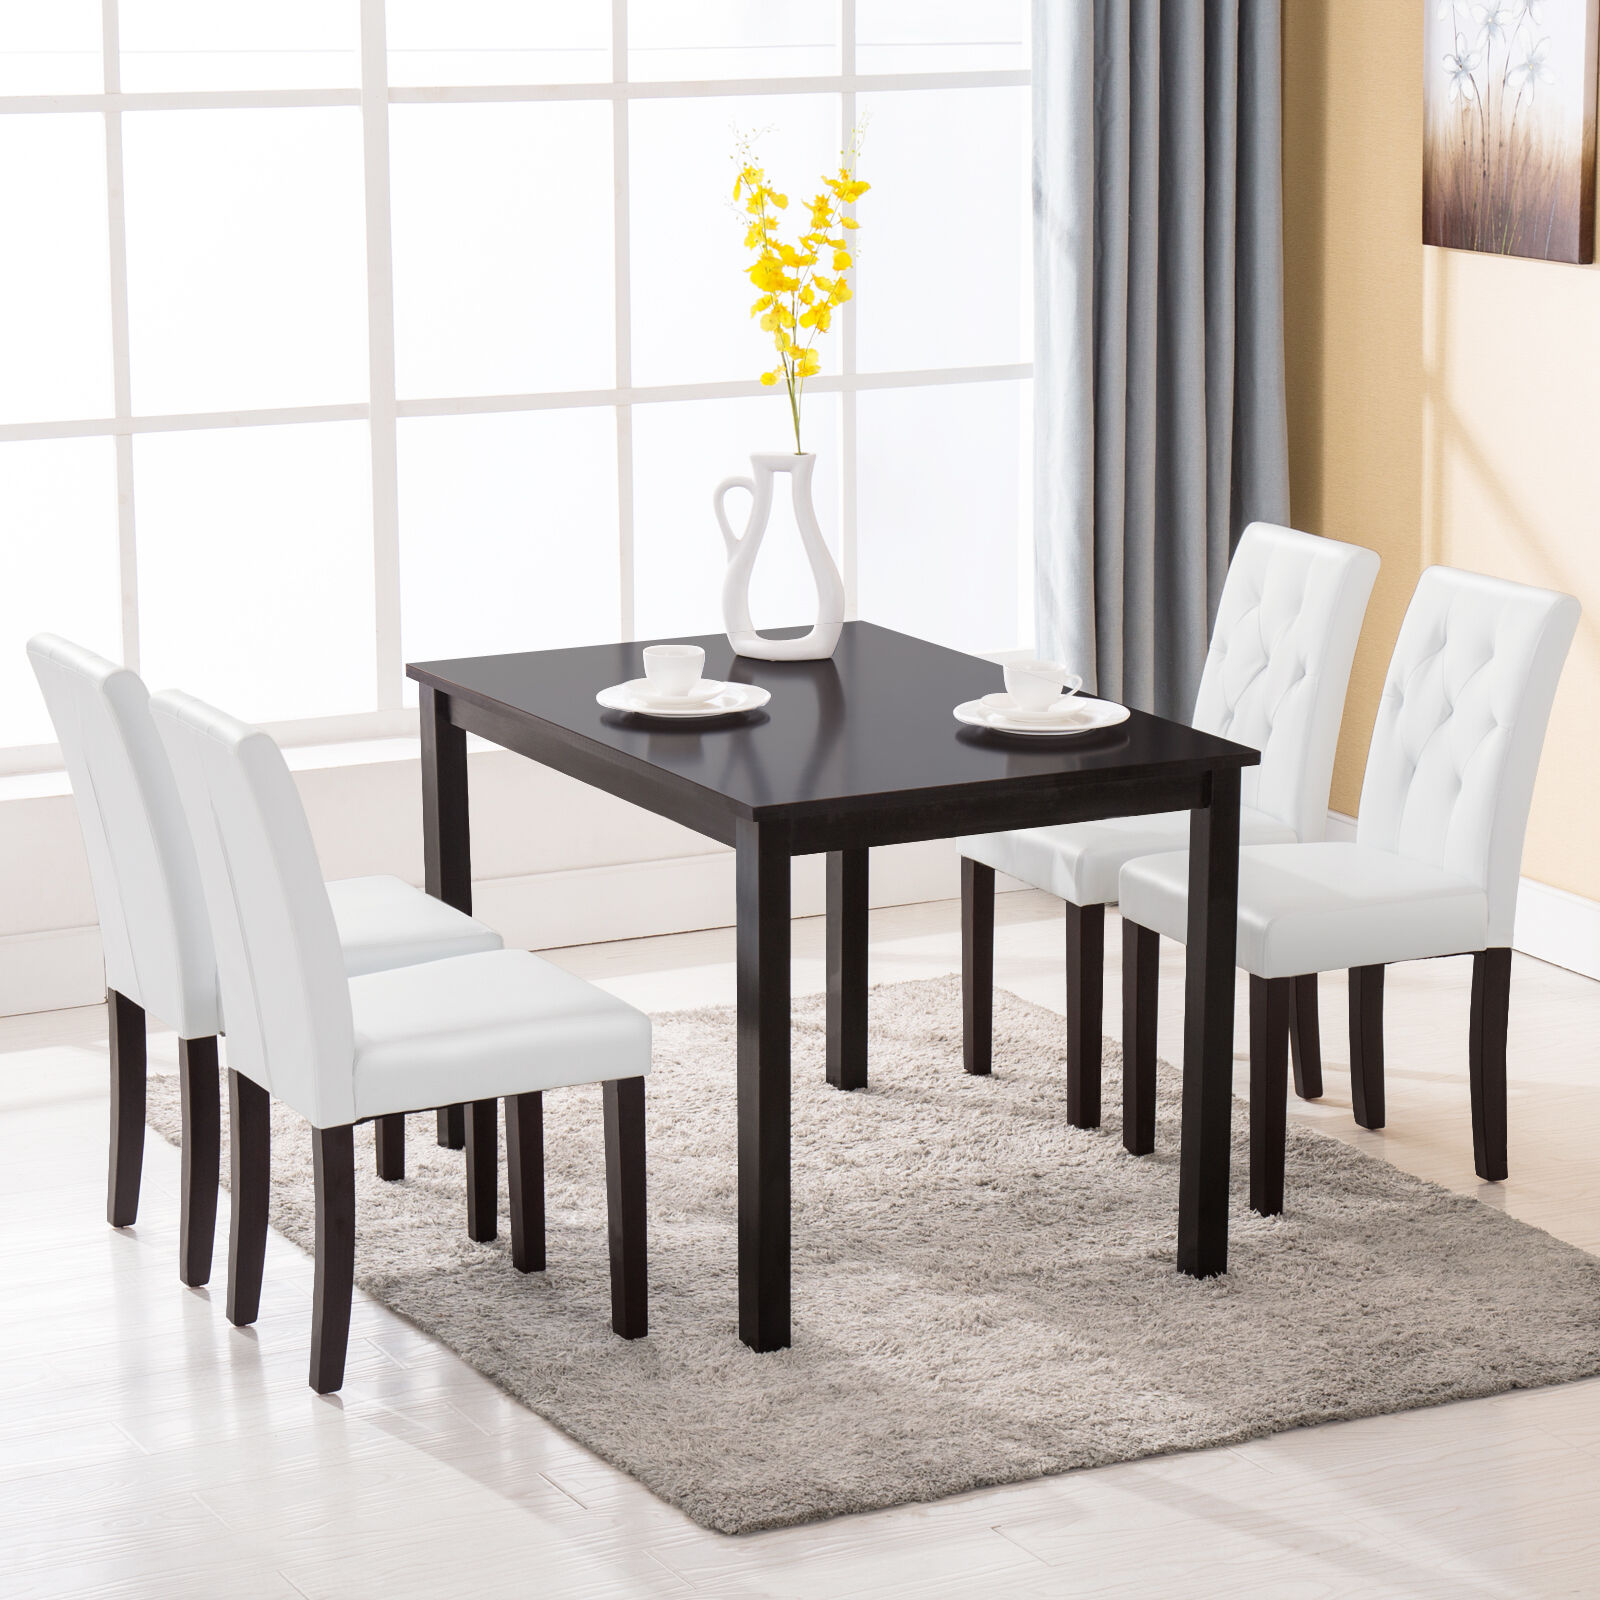 Dining Chairs Sets: 5 Piece Dining Table Set 4 Chairs Room Kitchen Dinette